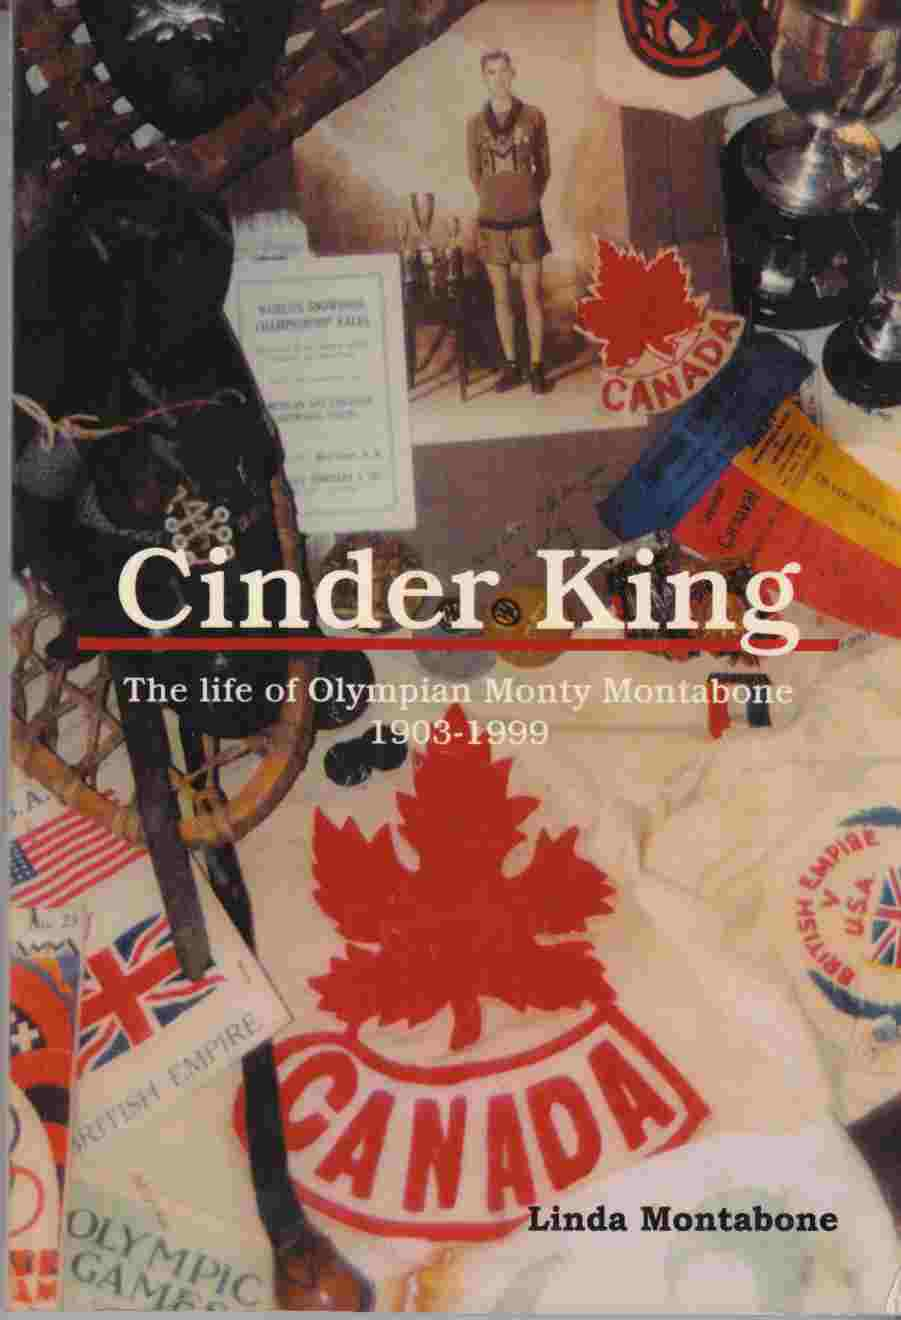 Image for Cinder King:  The Life of Olympian Monty Montybone 1903-1999